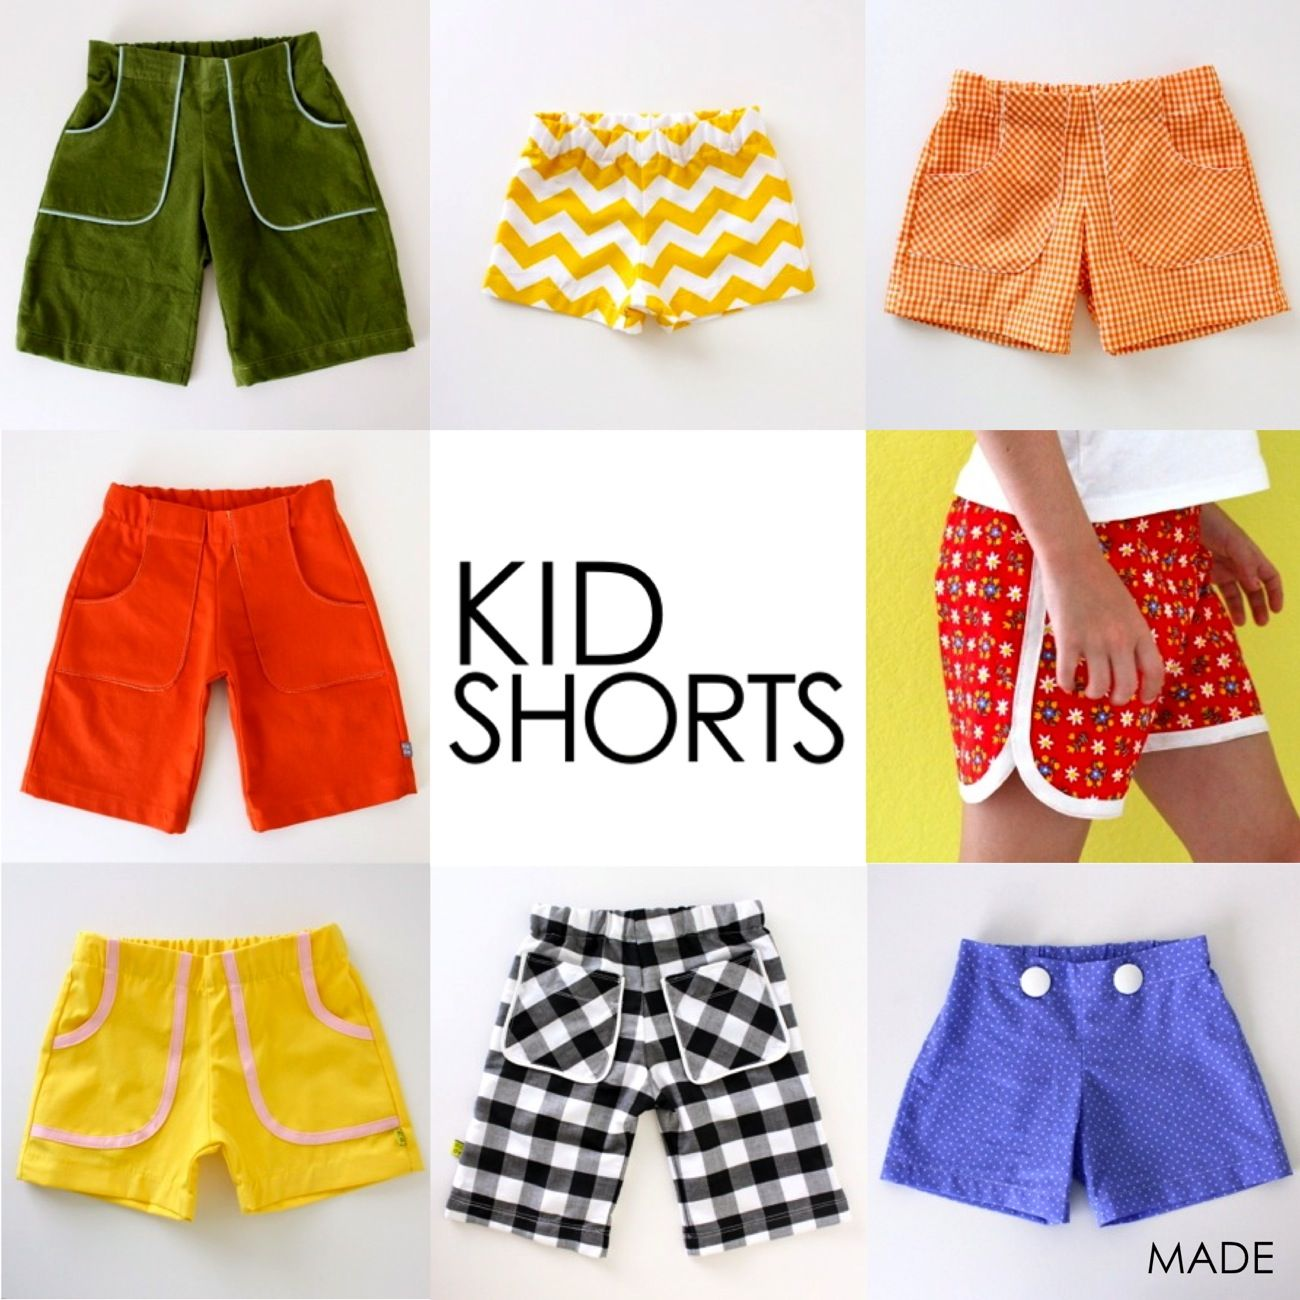 New pattern to purchase with online tutorials for other pattern kid shortsages 12 months to 10 years jeuxipadfo Images